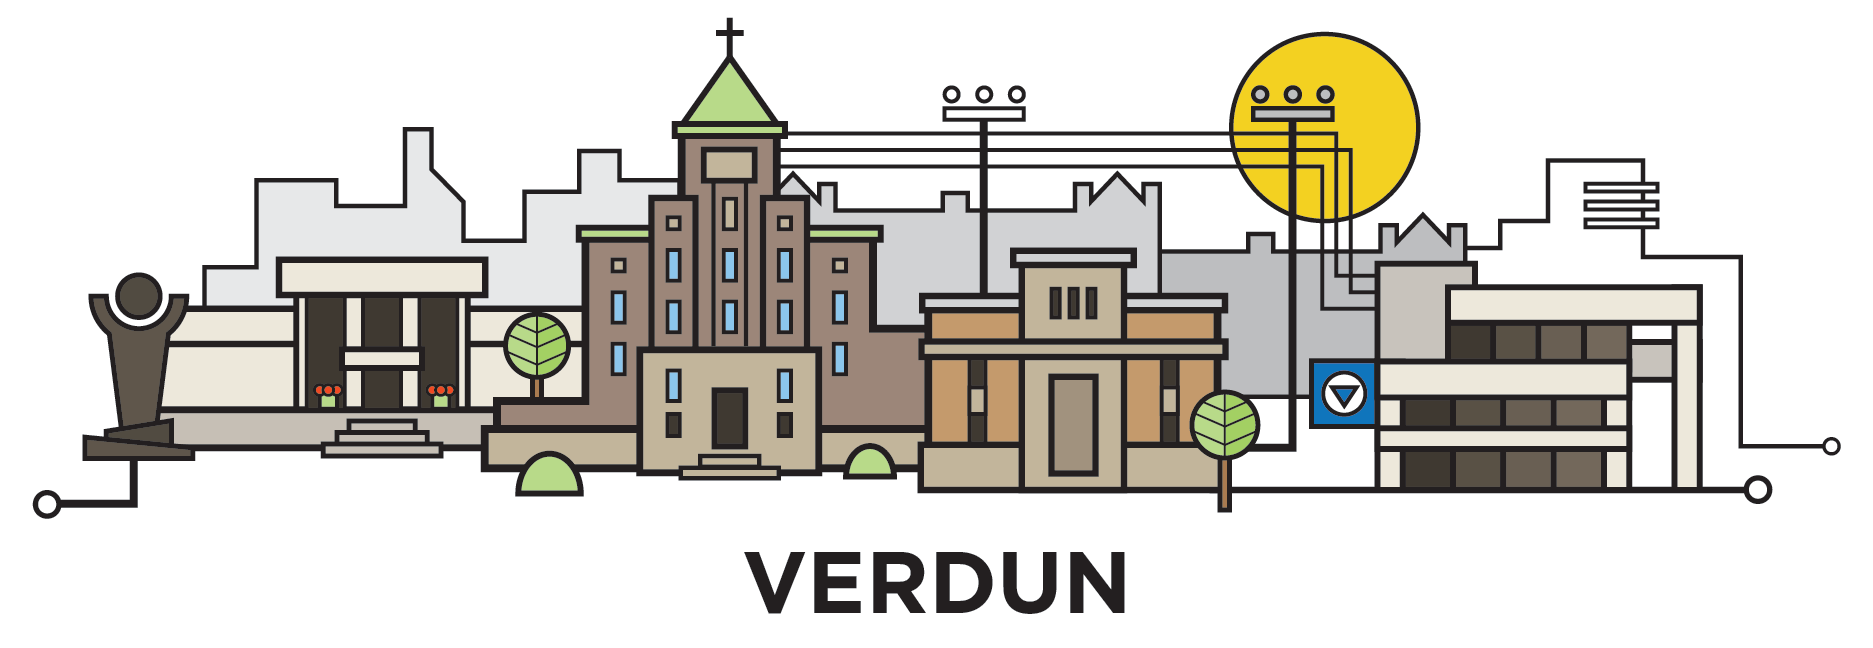 mtl-verdun-cityline-illustration-by-loogart